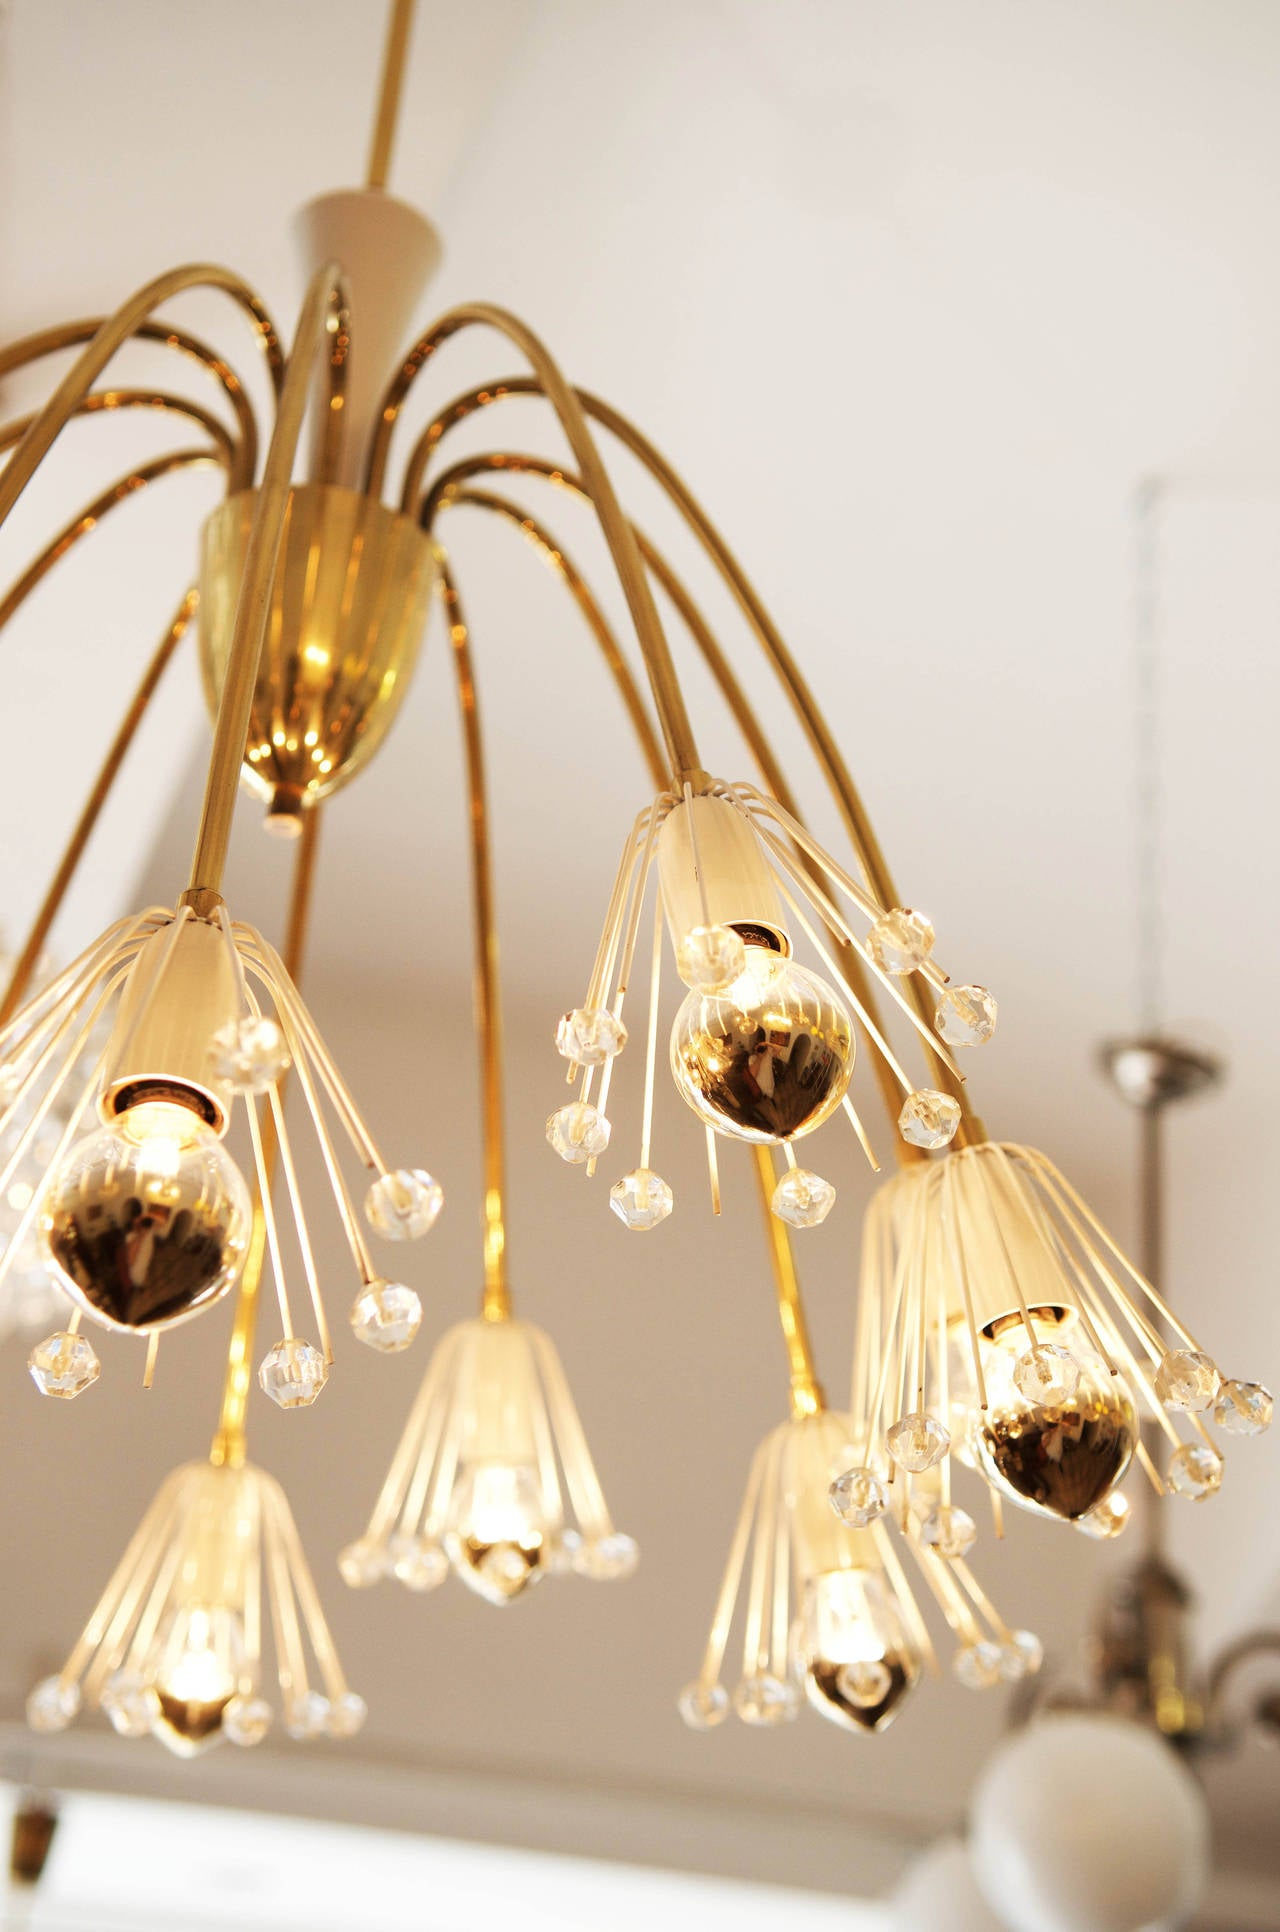 Mid Century Modernist chandelier by Emil Stejnar for Rupert Nikoll